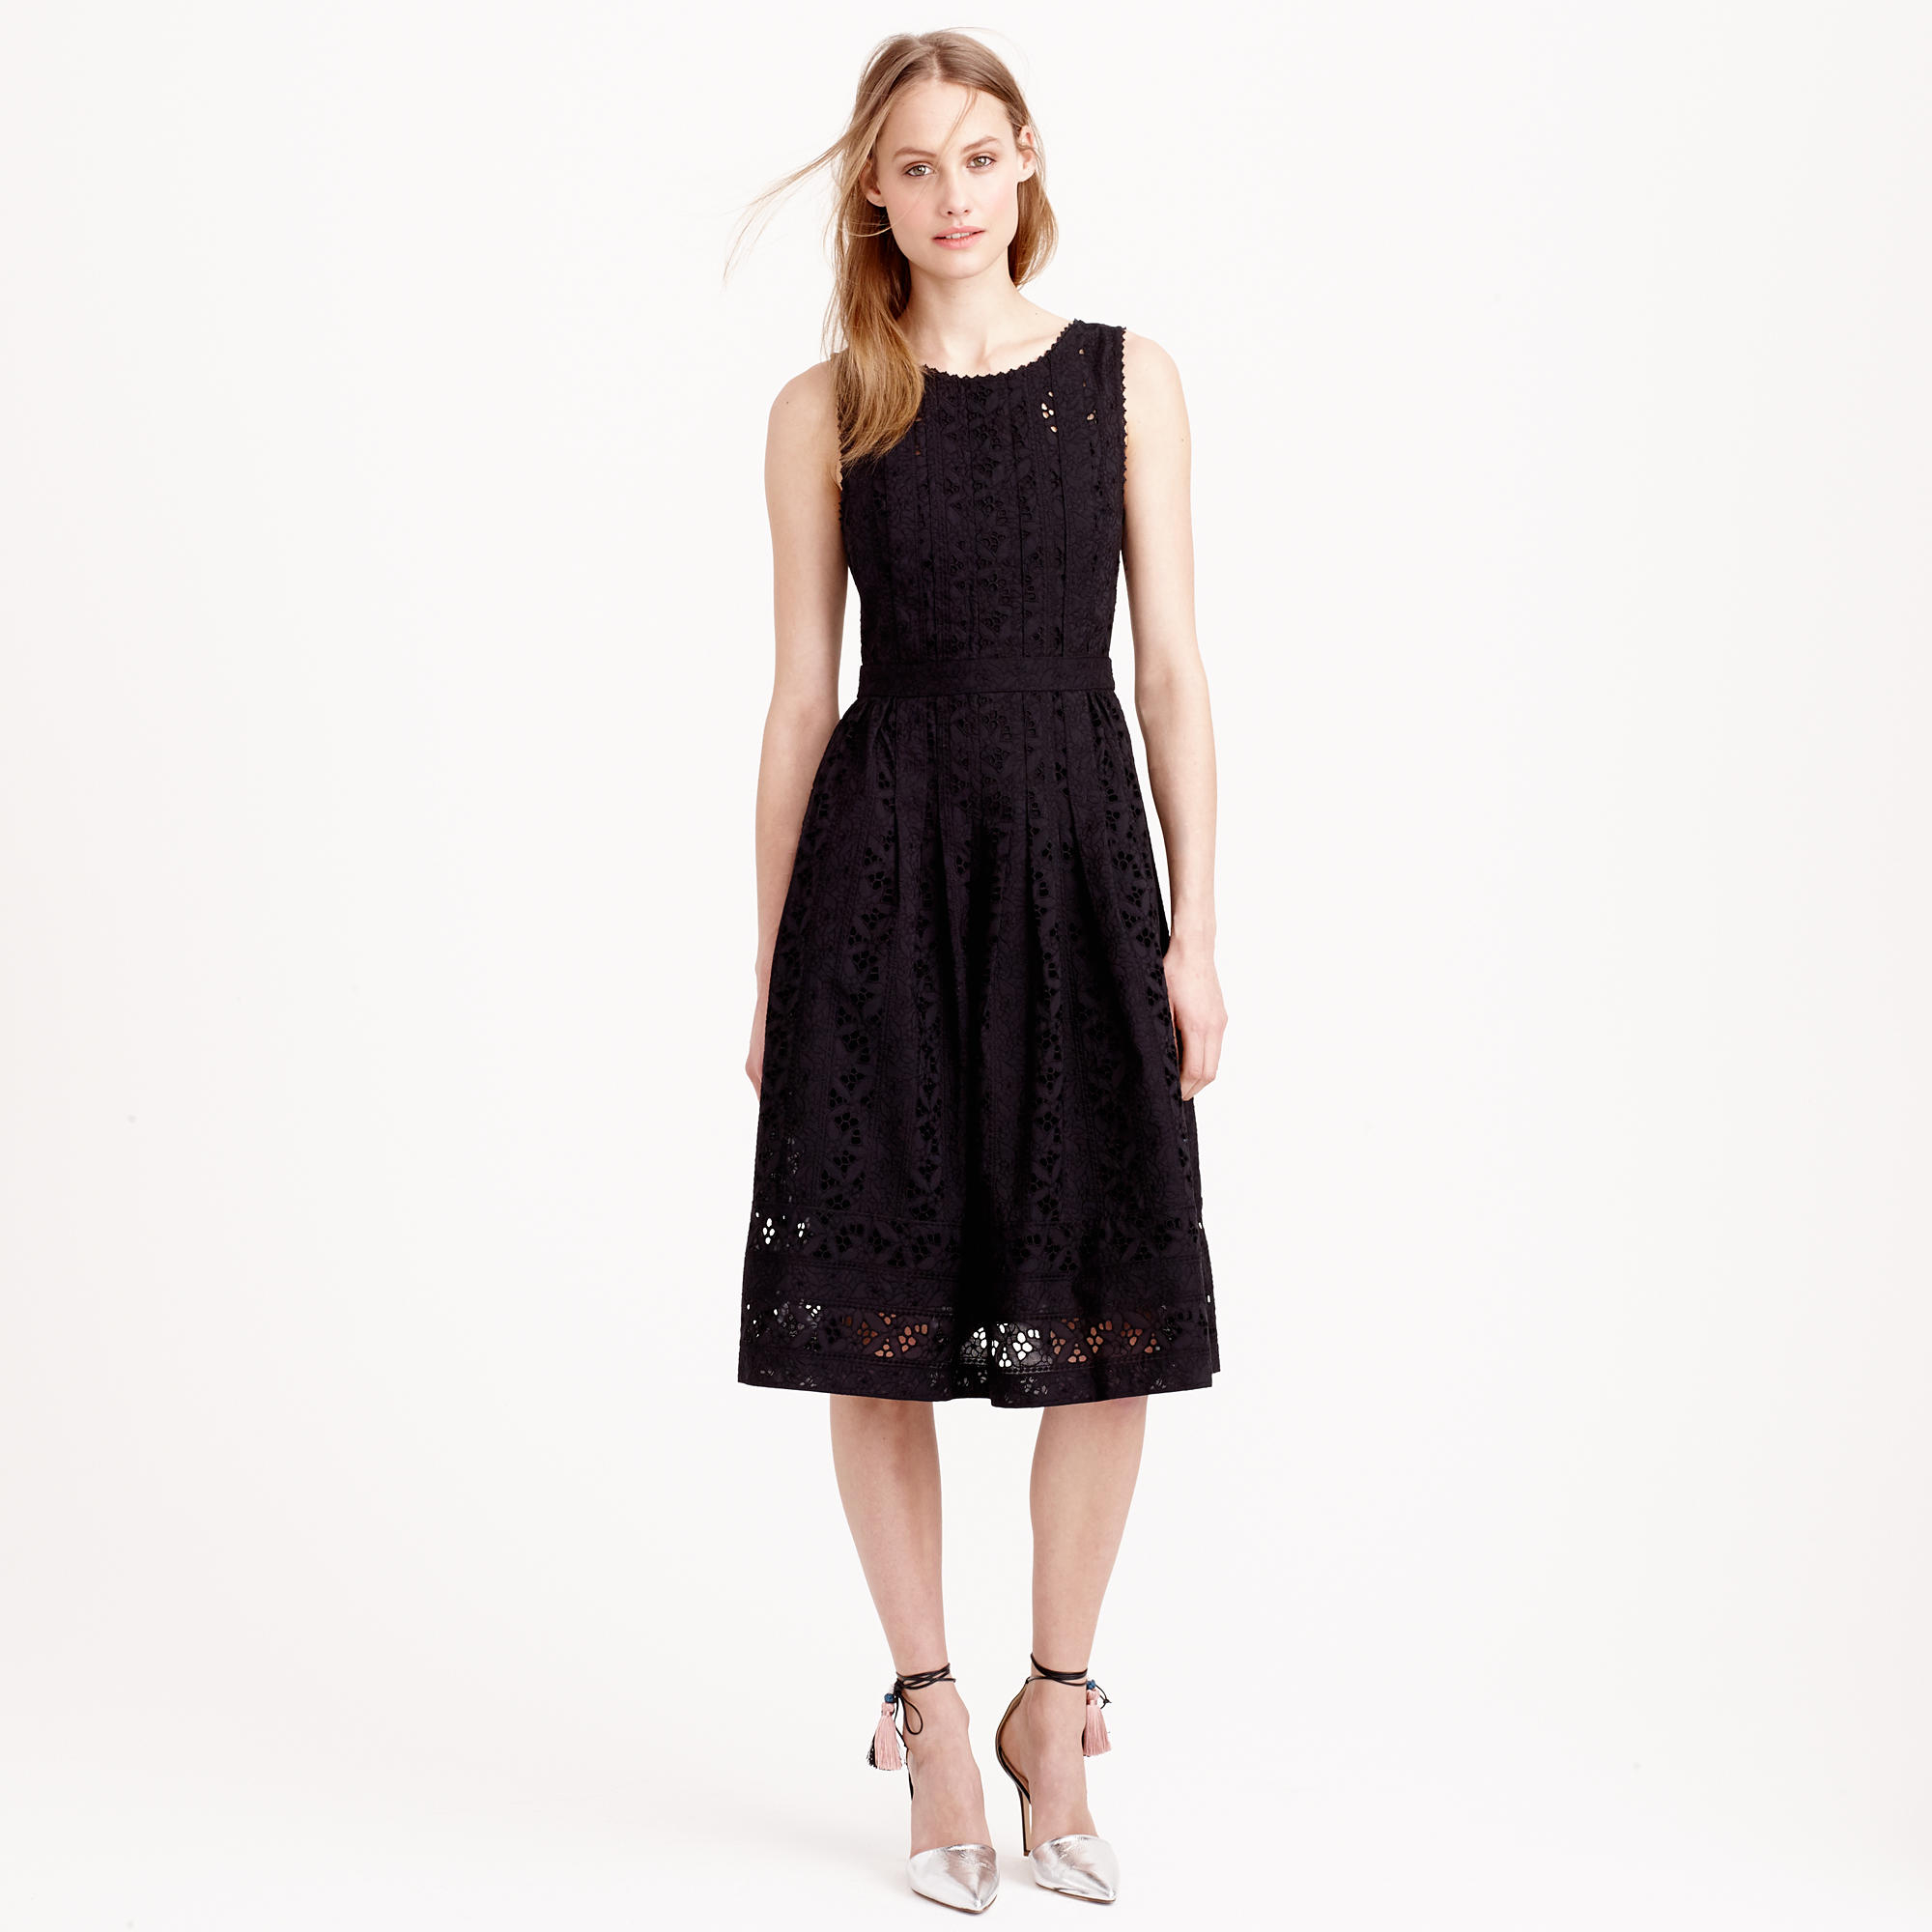 J.crew Collection Pleated Eyelet Dress in Black | Lyst